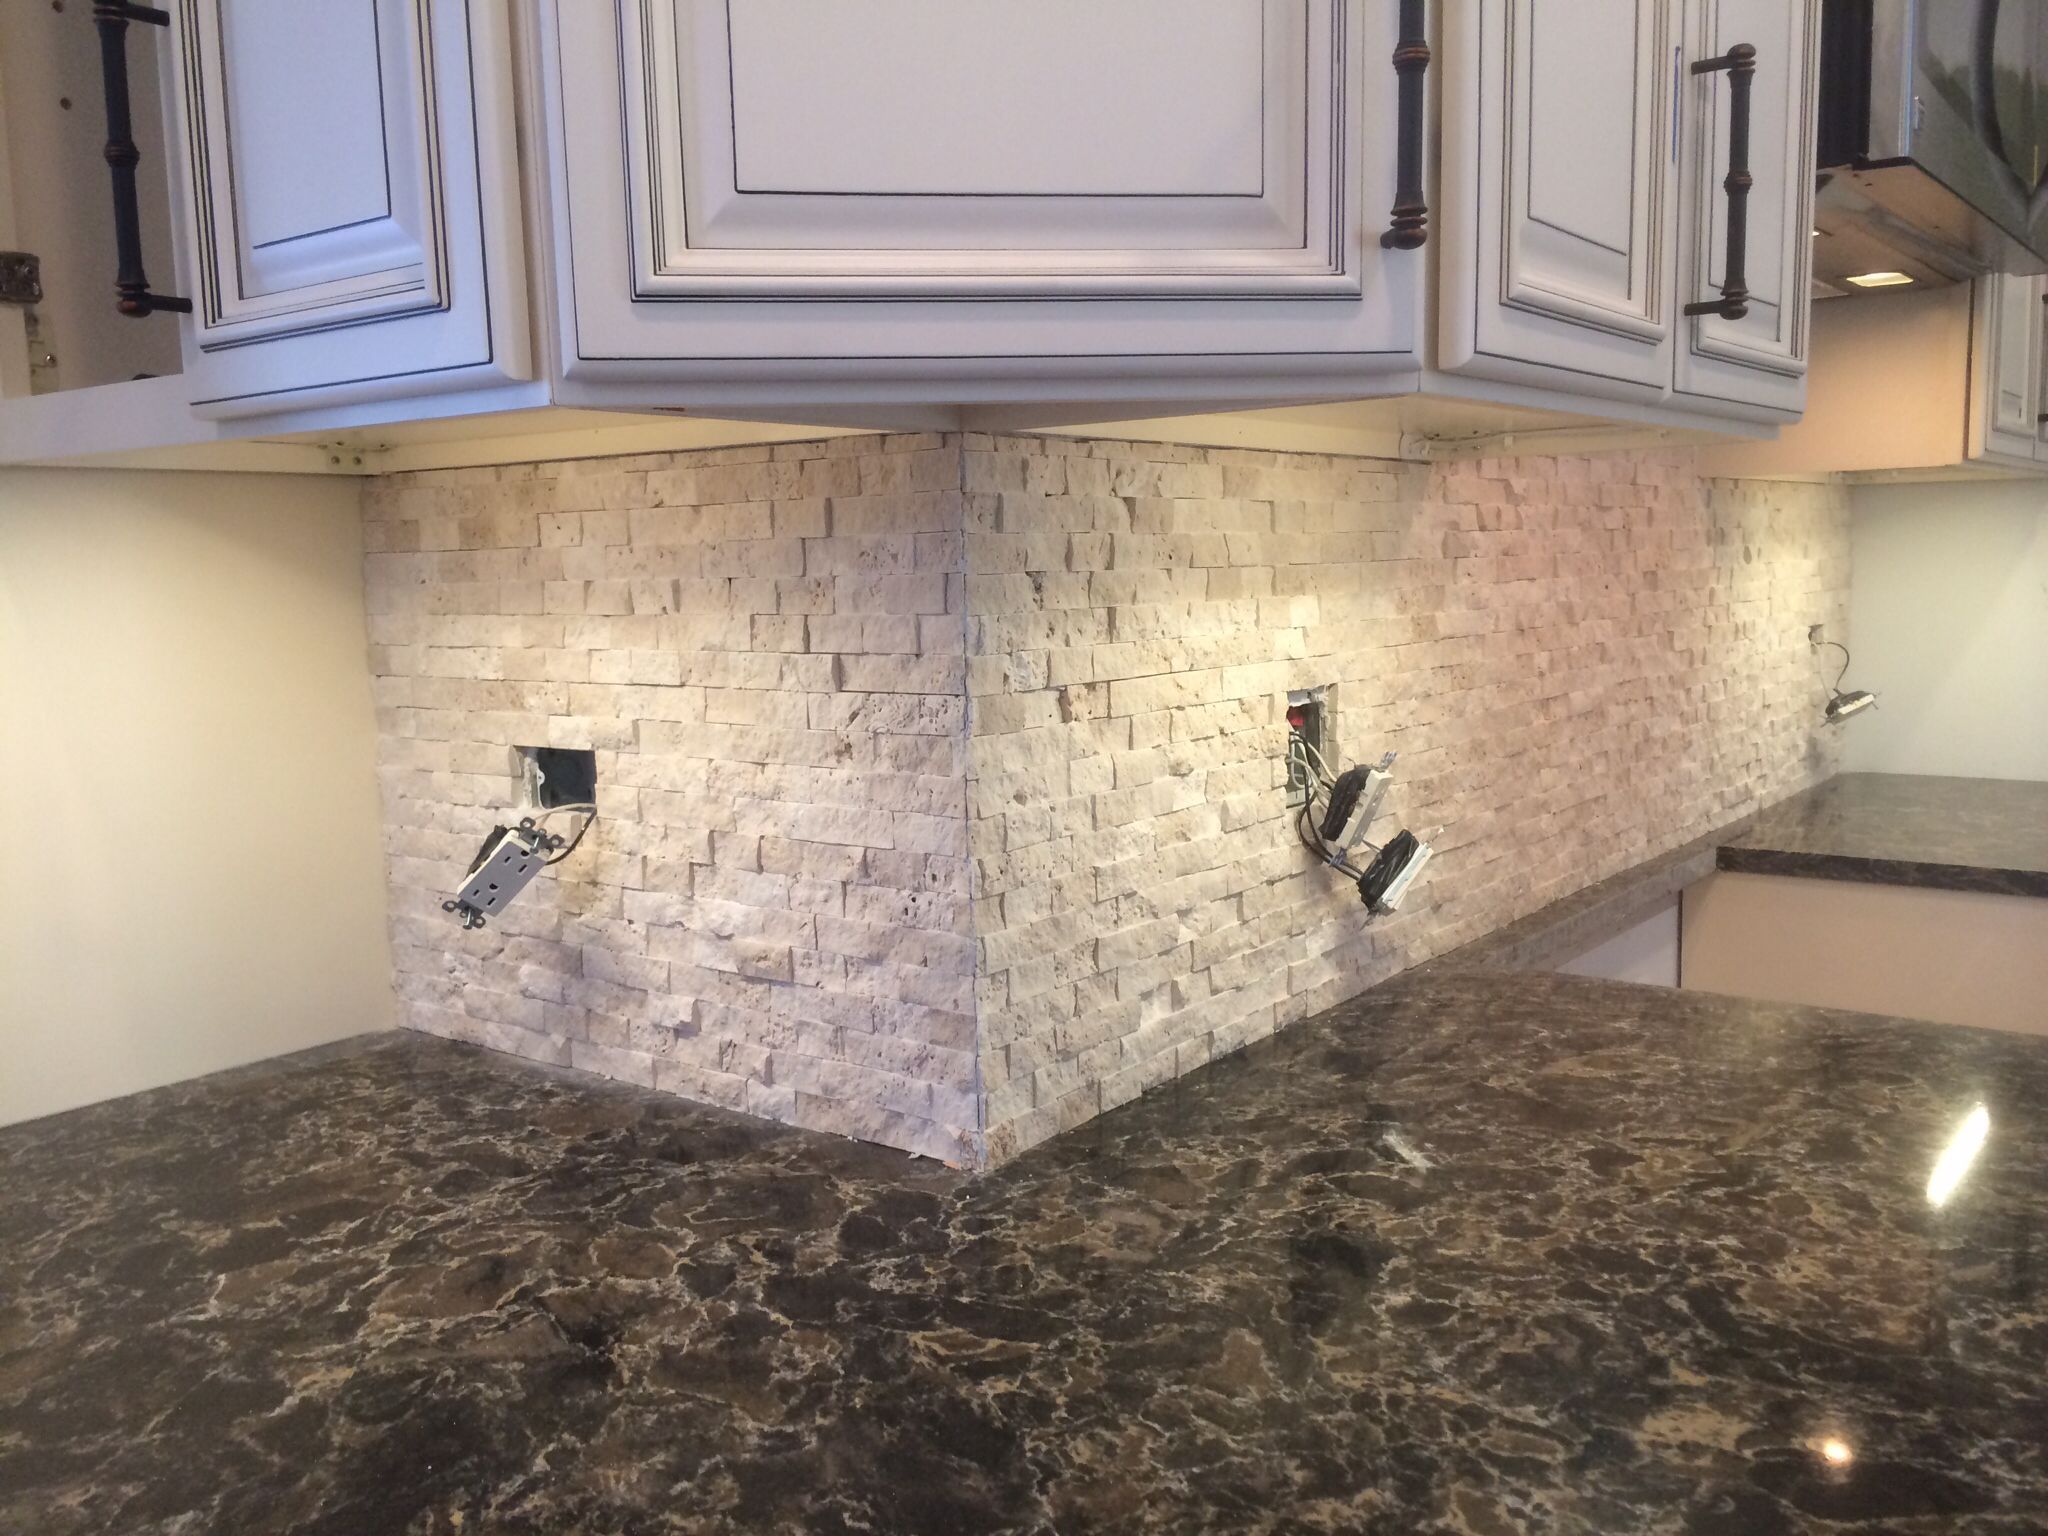 fl misterio remodel countertop countertops quartz gallery projects in pompeii tampa view vanity past bathroom